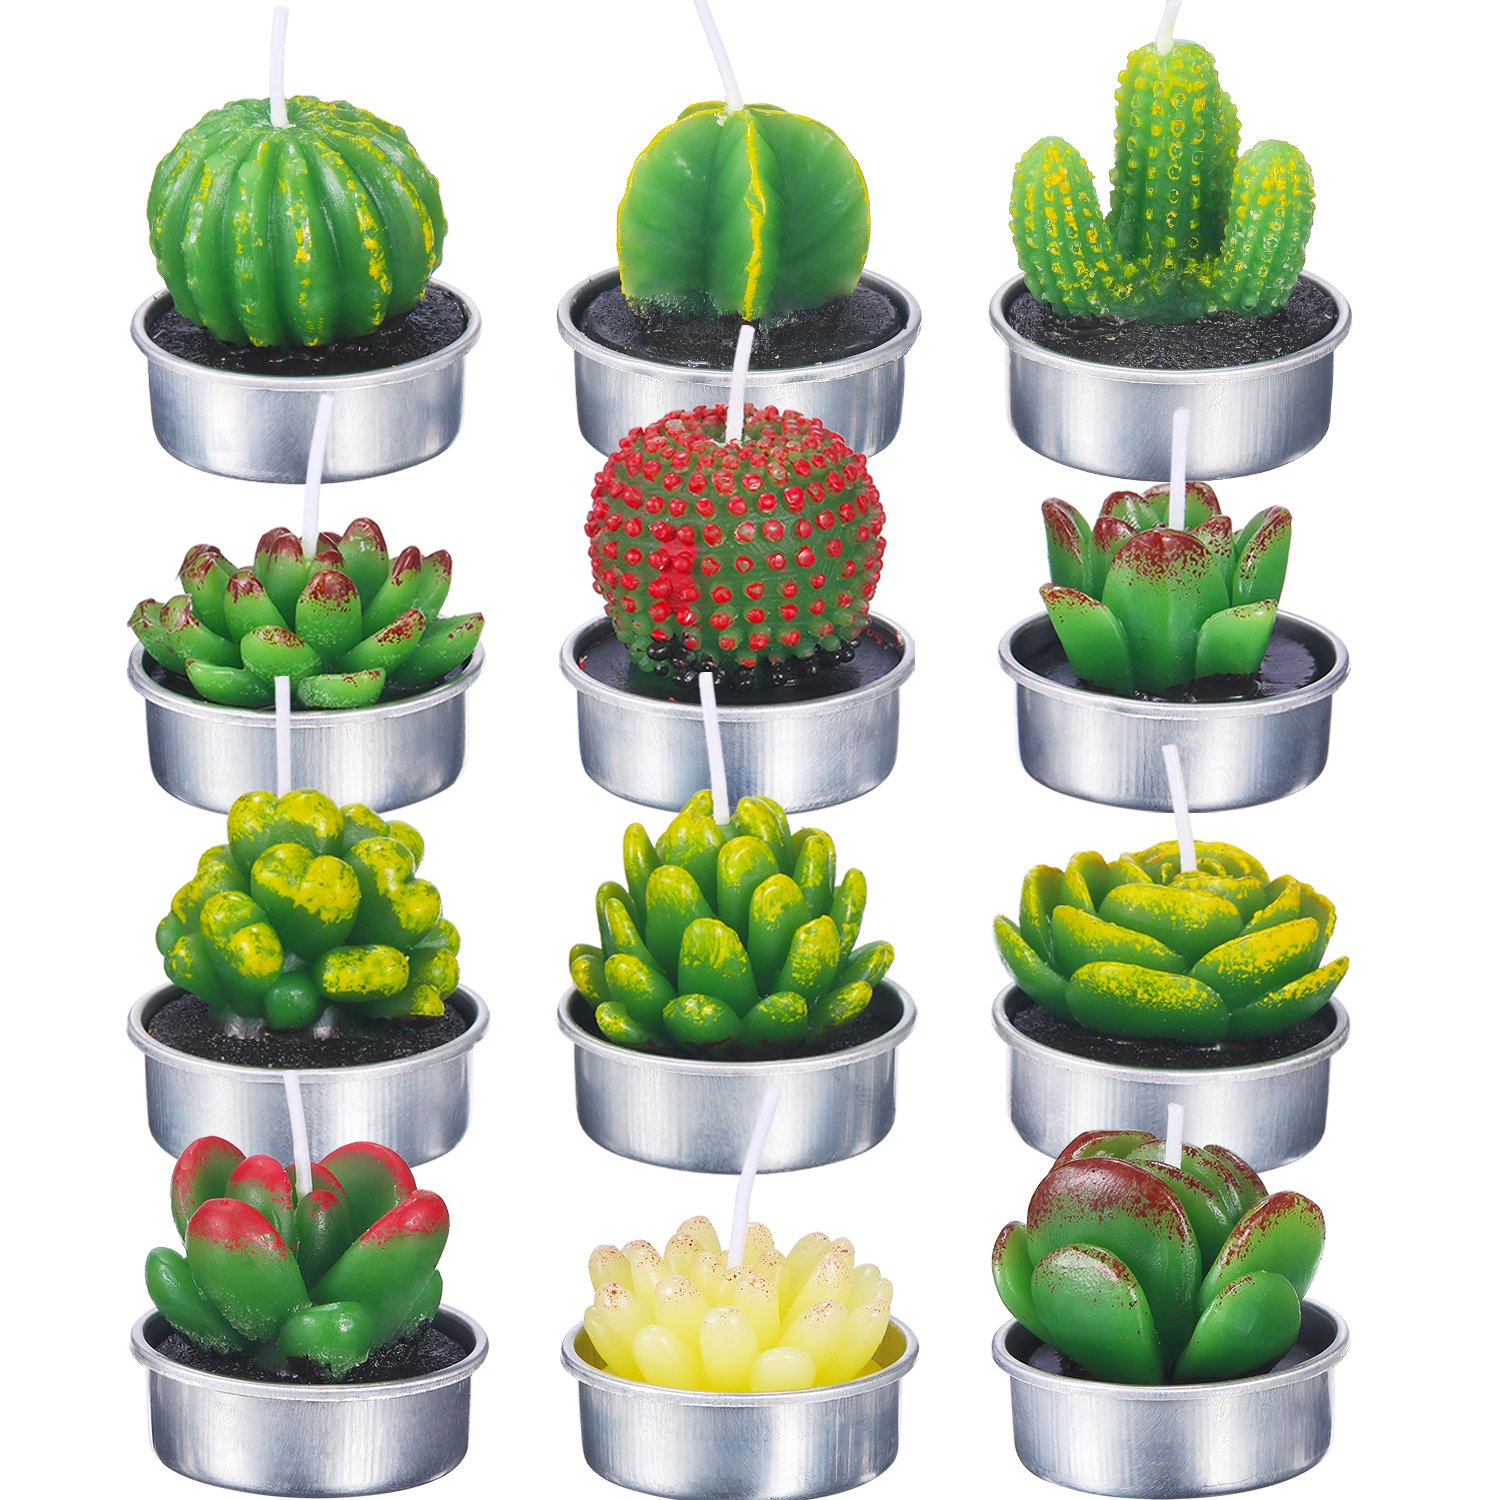 TecUnite 12 Pieces Succulent Cactus Candles Handmade Cactus Tealight Candles for Spa Home Party Wedding Decoration Gifts